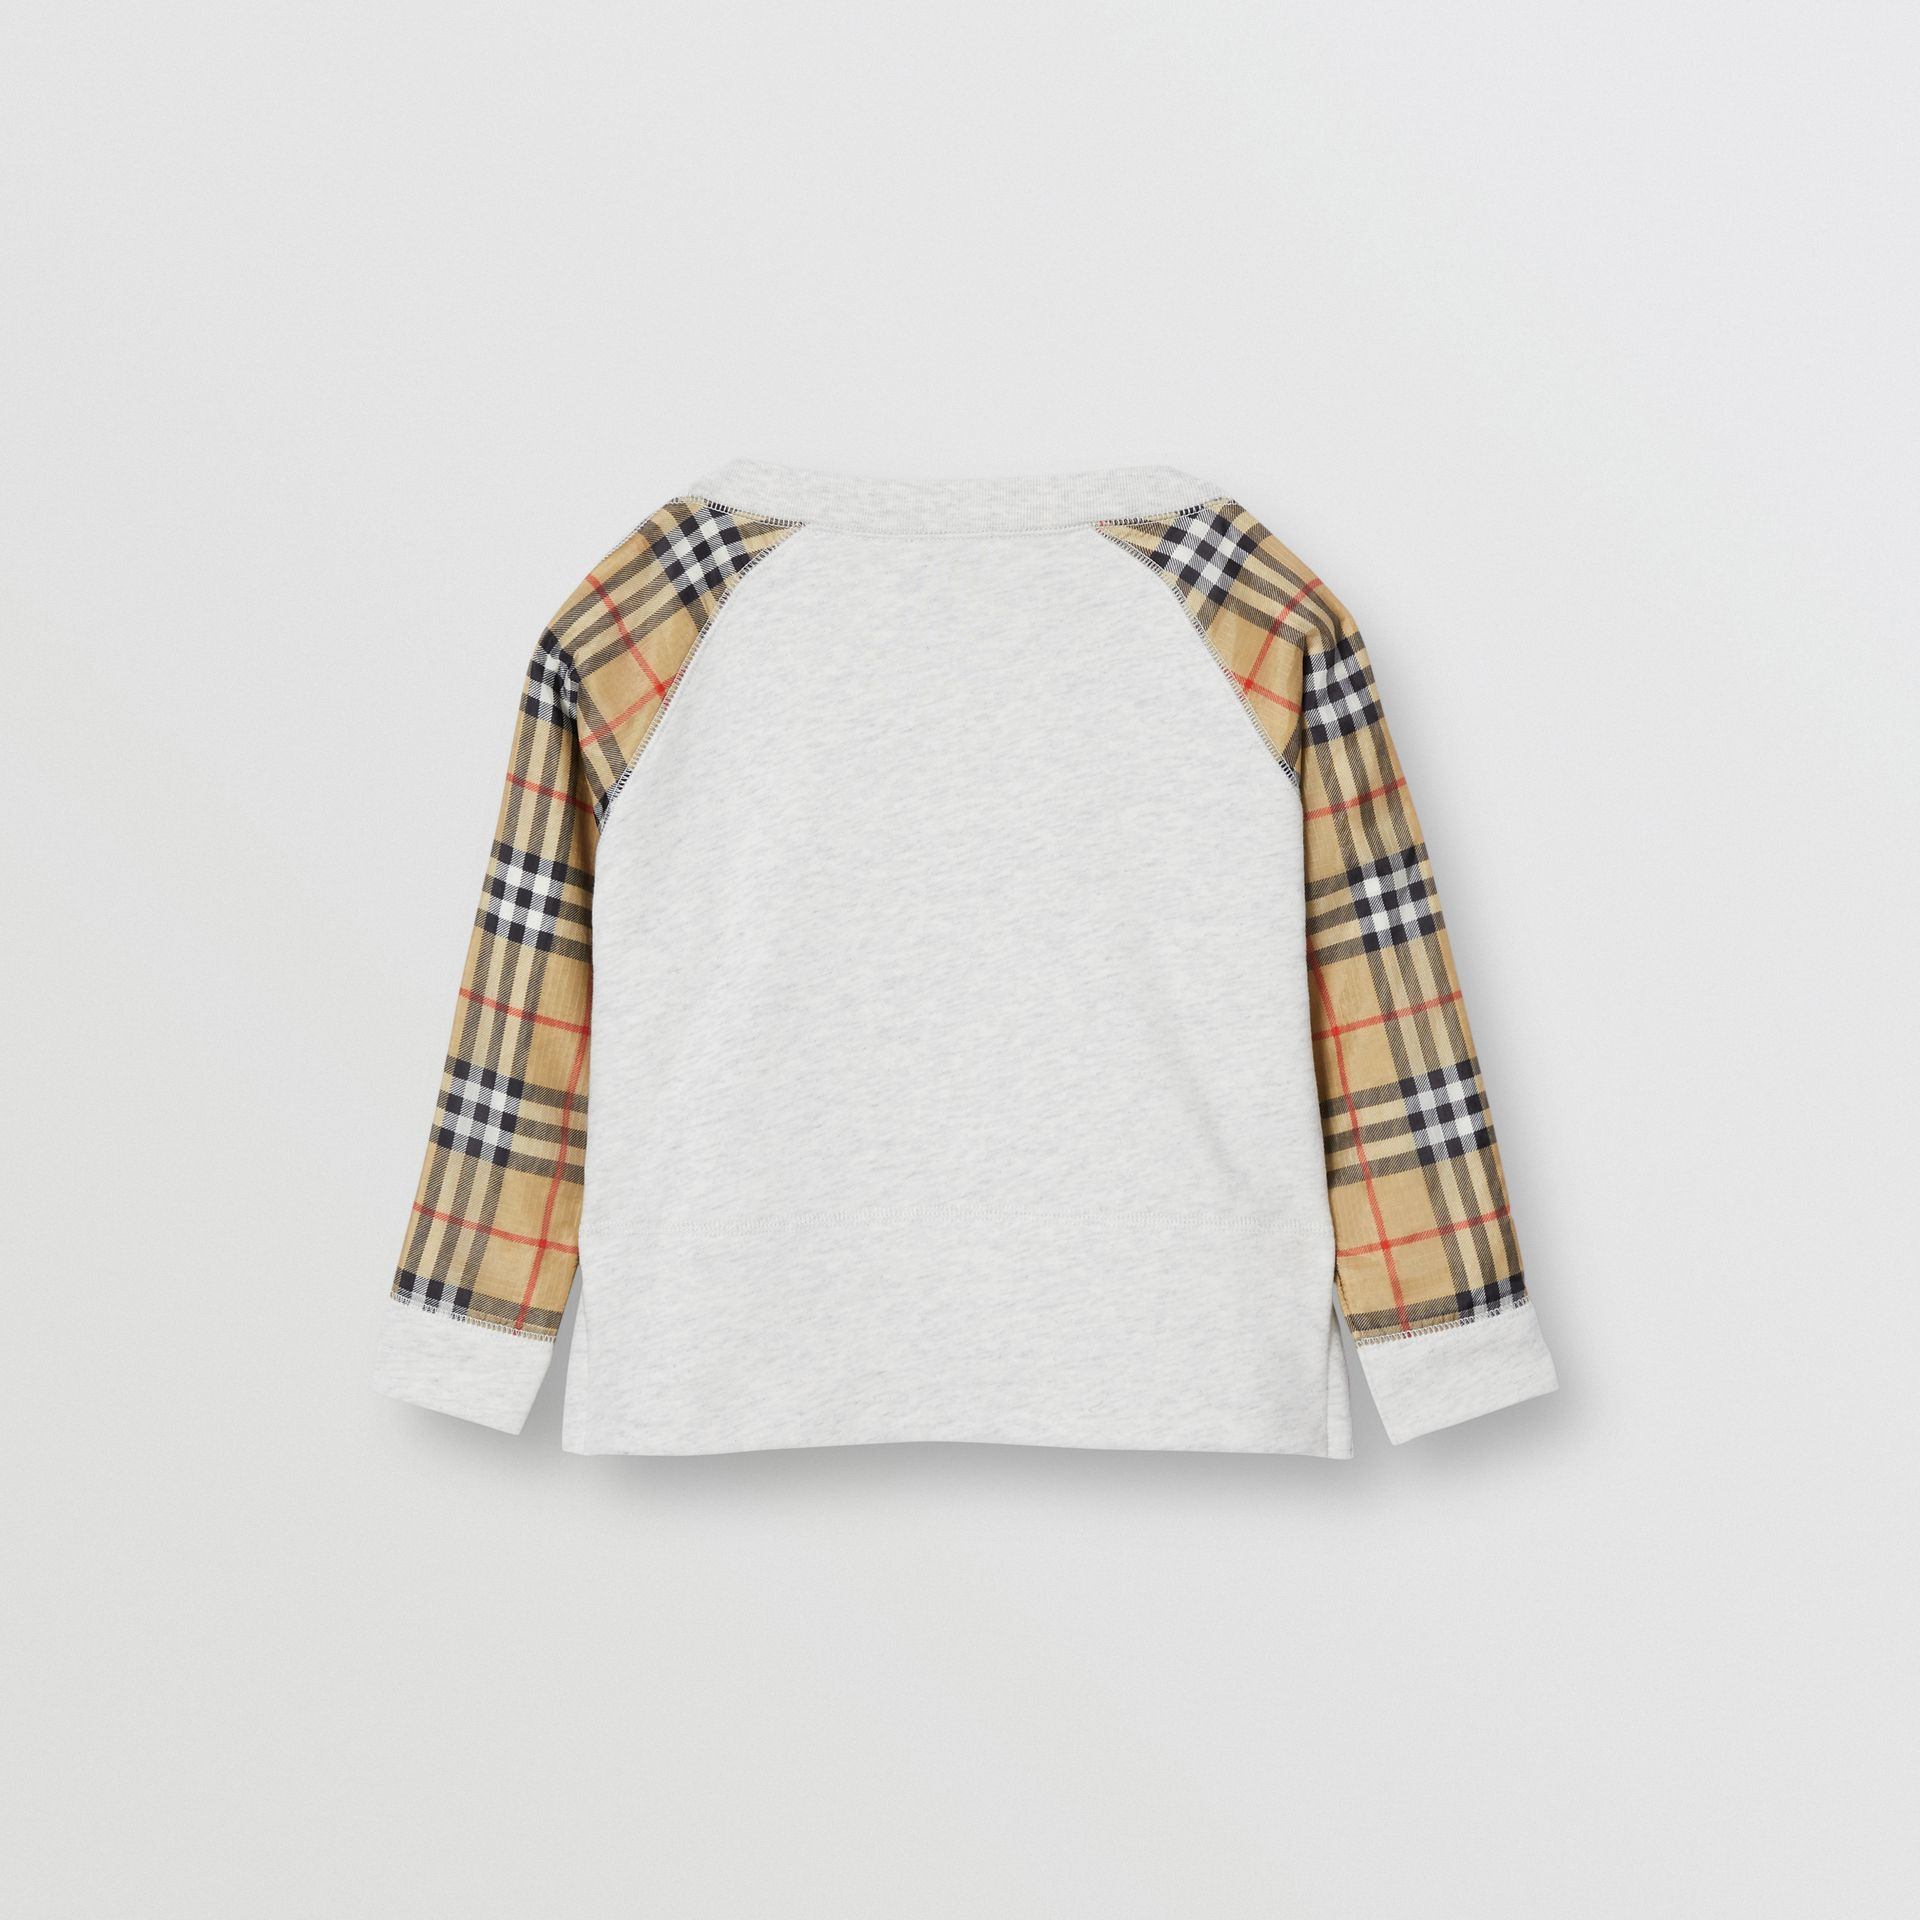 Sweat-shirt en coton avec logo et Vintage check (Camaïeu De Blancs) | Burberry - photo de la galerie 4